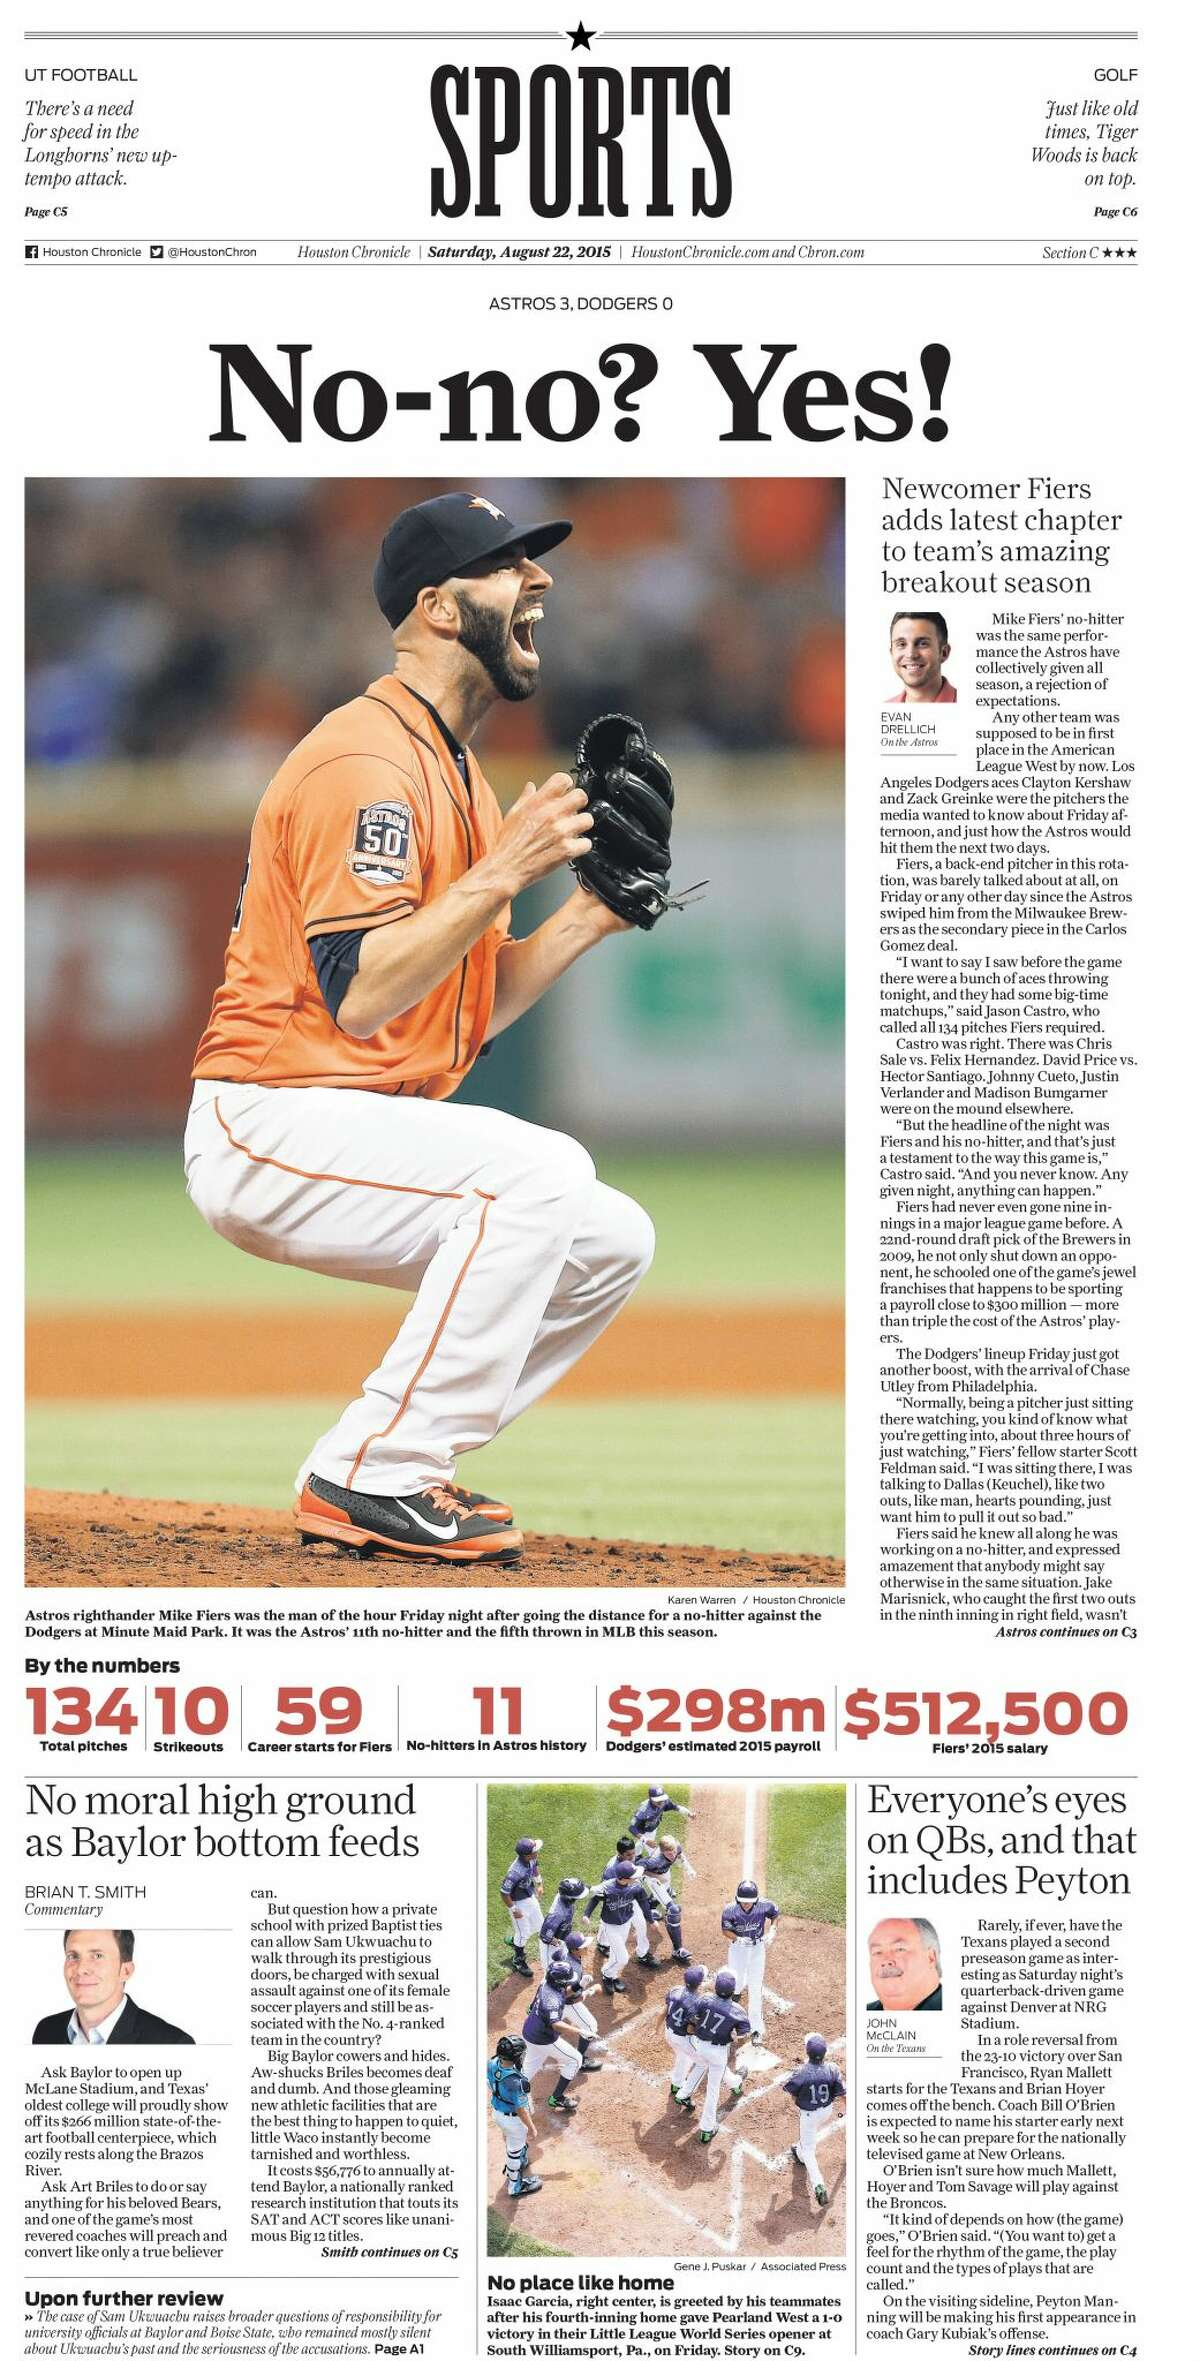 The Aug. 22, 2015, front page of the Houston Chronicle sports section after Mike Fiers pitched a no-hitter against the Dodgers at Minute Maid Park.